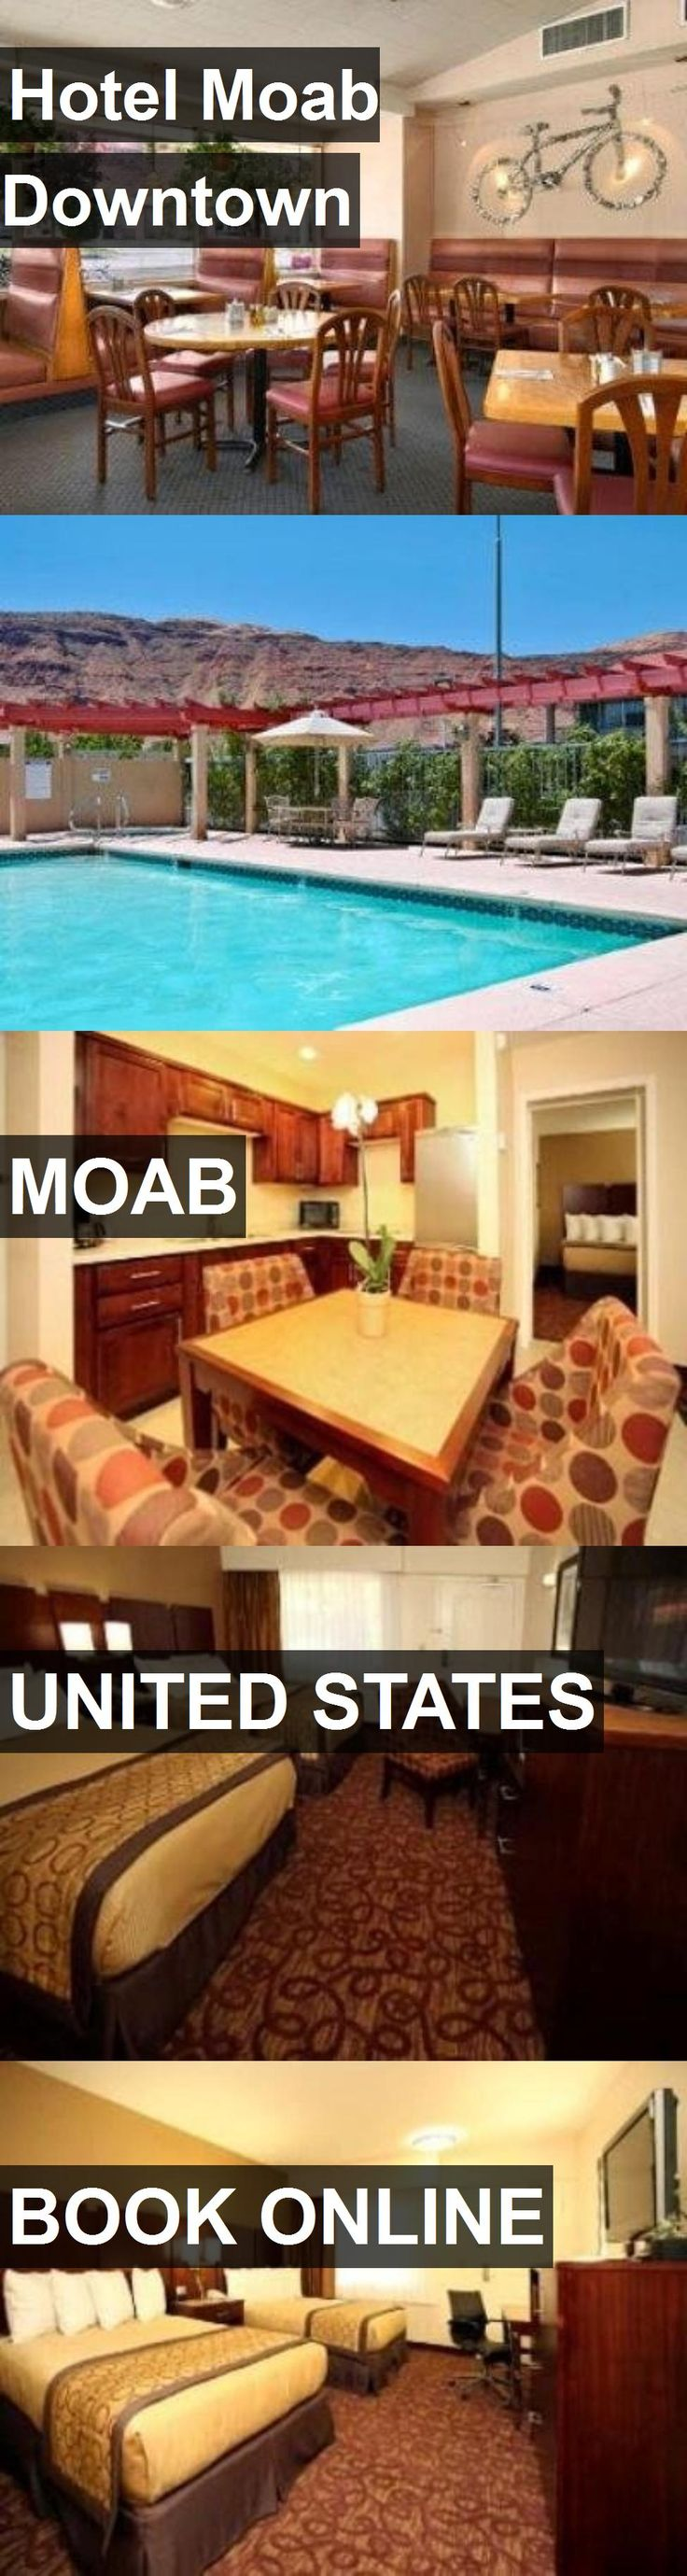 Hotel Hotel Moab Downtown in Moab, United States. For more information, photos, reviews and best prices please follow the link. #UnitedStates #Moab #HotelMoabDowntown #hotel #travel #vacation